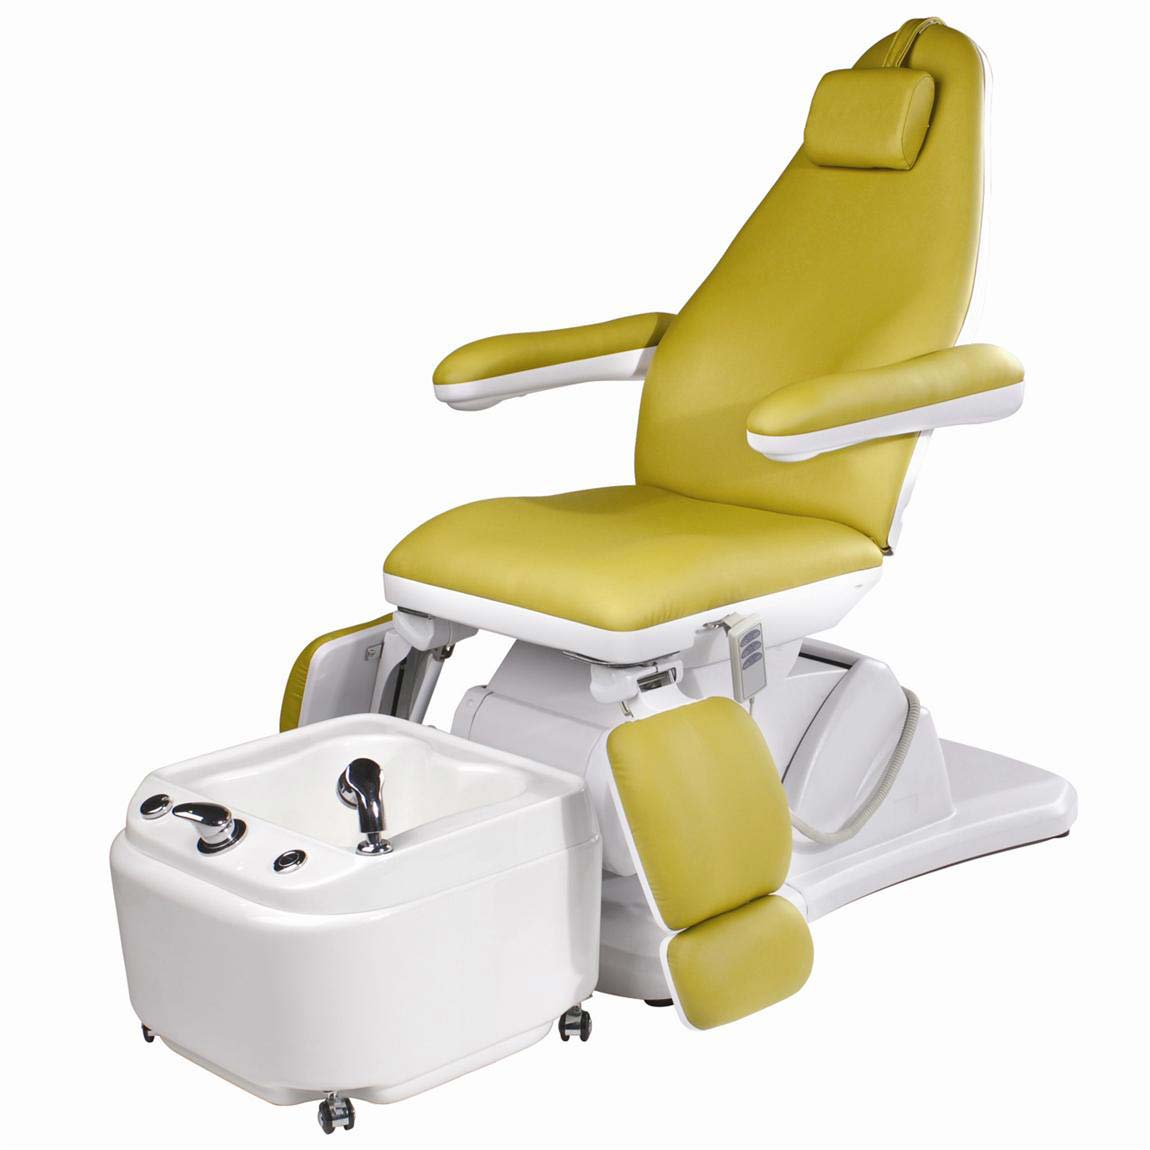 Pedicure Chairs No Plumbing Needed Eurostyle Portable Pedicure Spa With Electric Beauty Chair